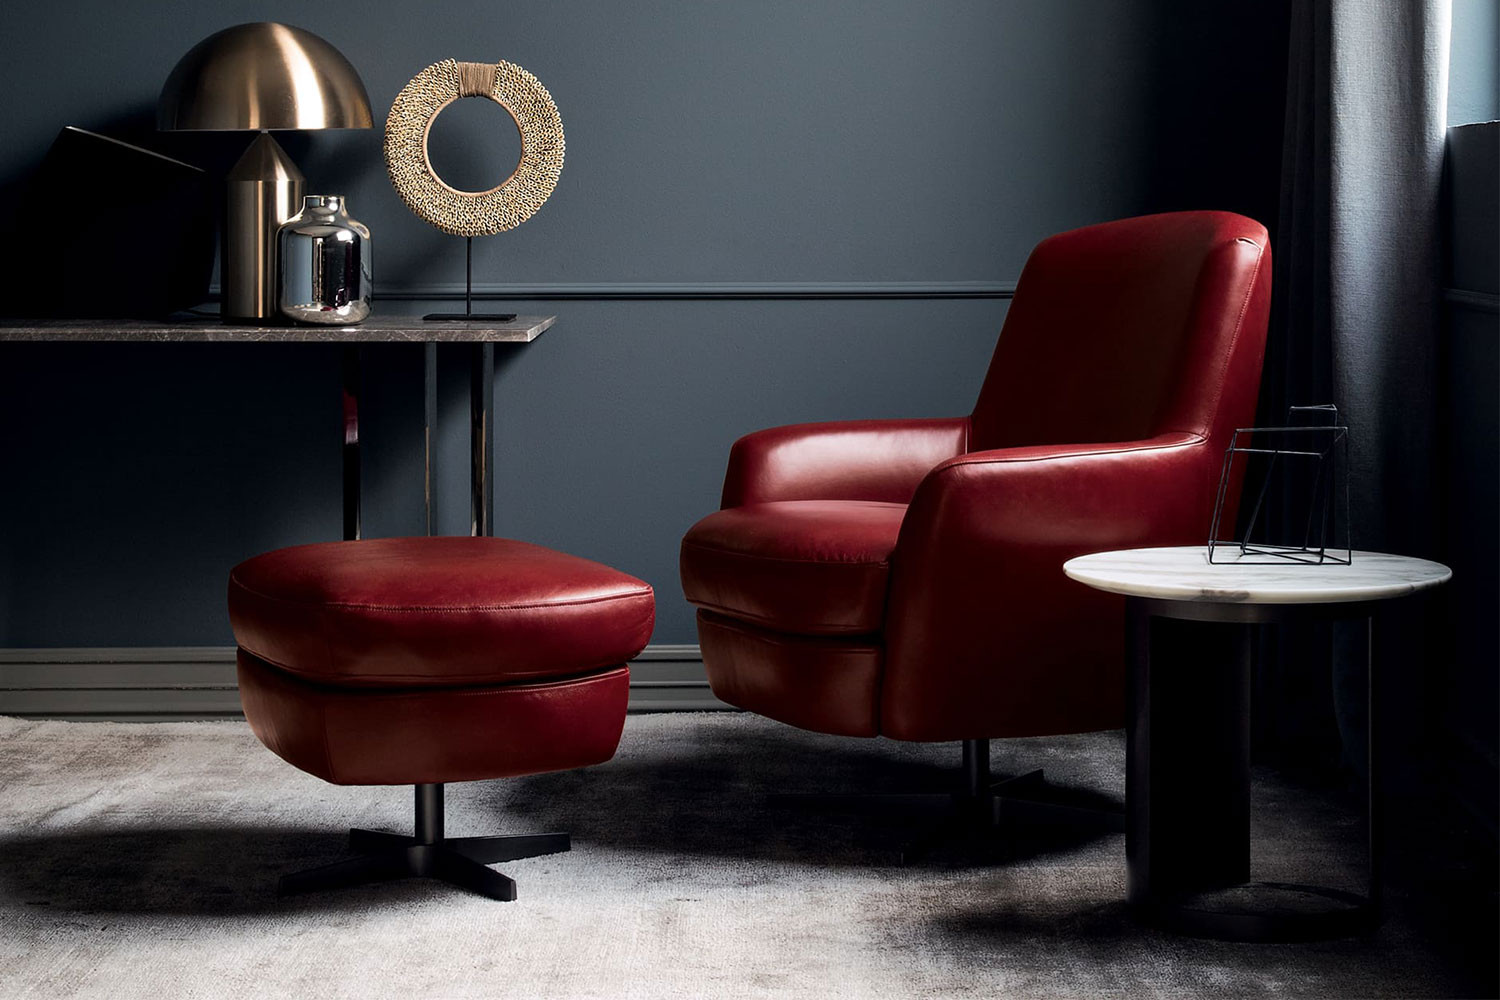 4-star base swivel armchair with high back and low arms